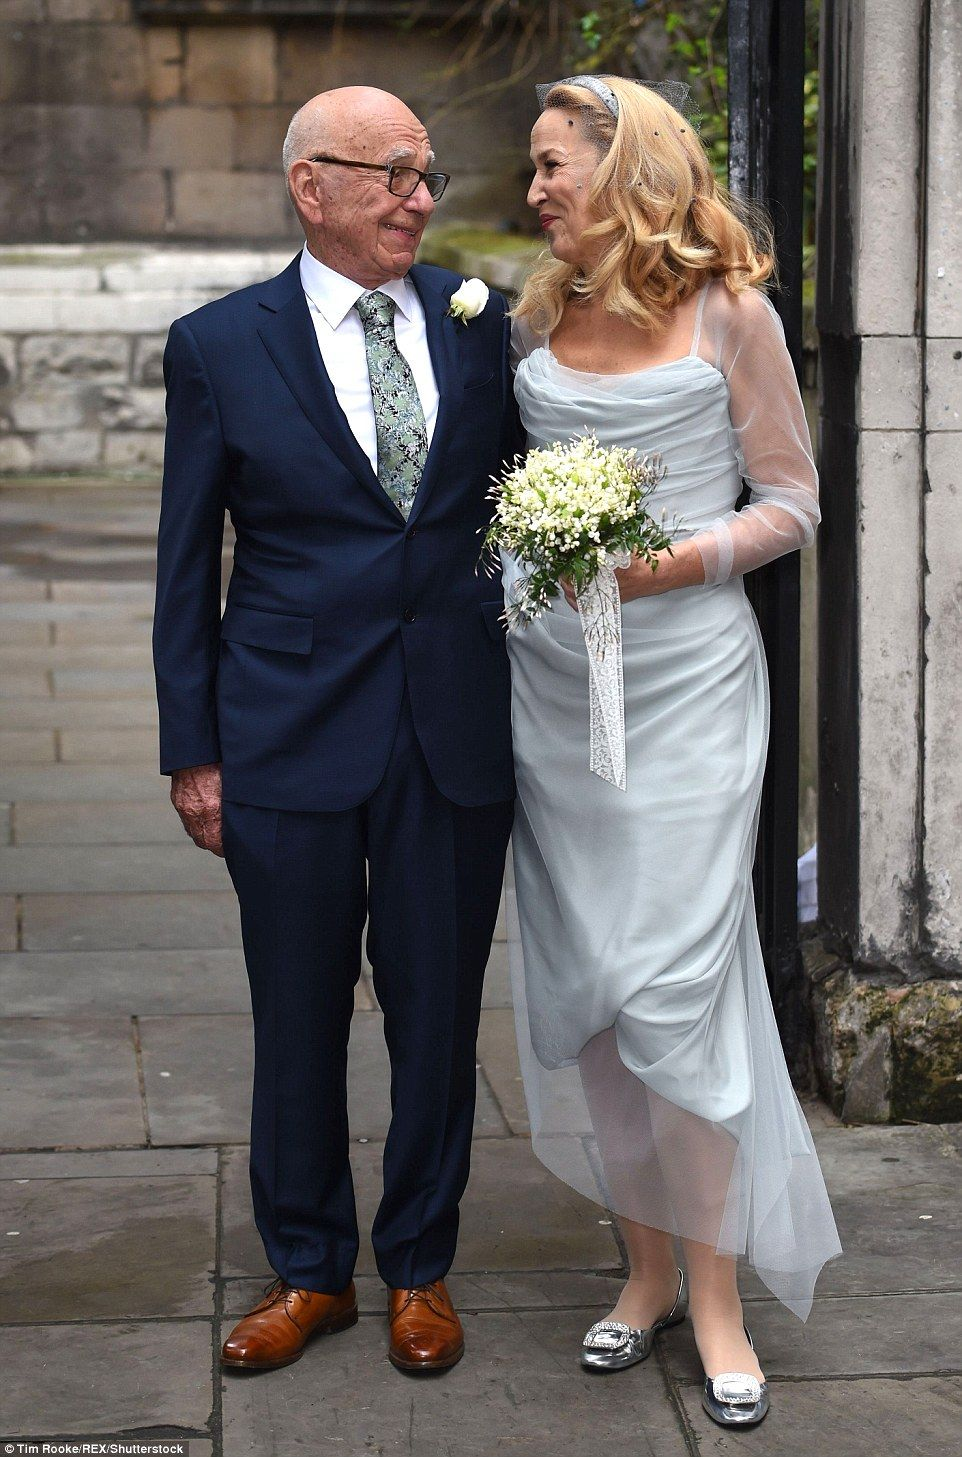 Rupert murdoch and jerry hall to hold ceremony at fleet street